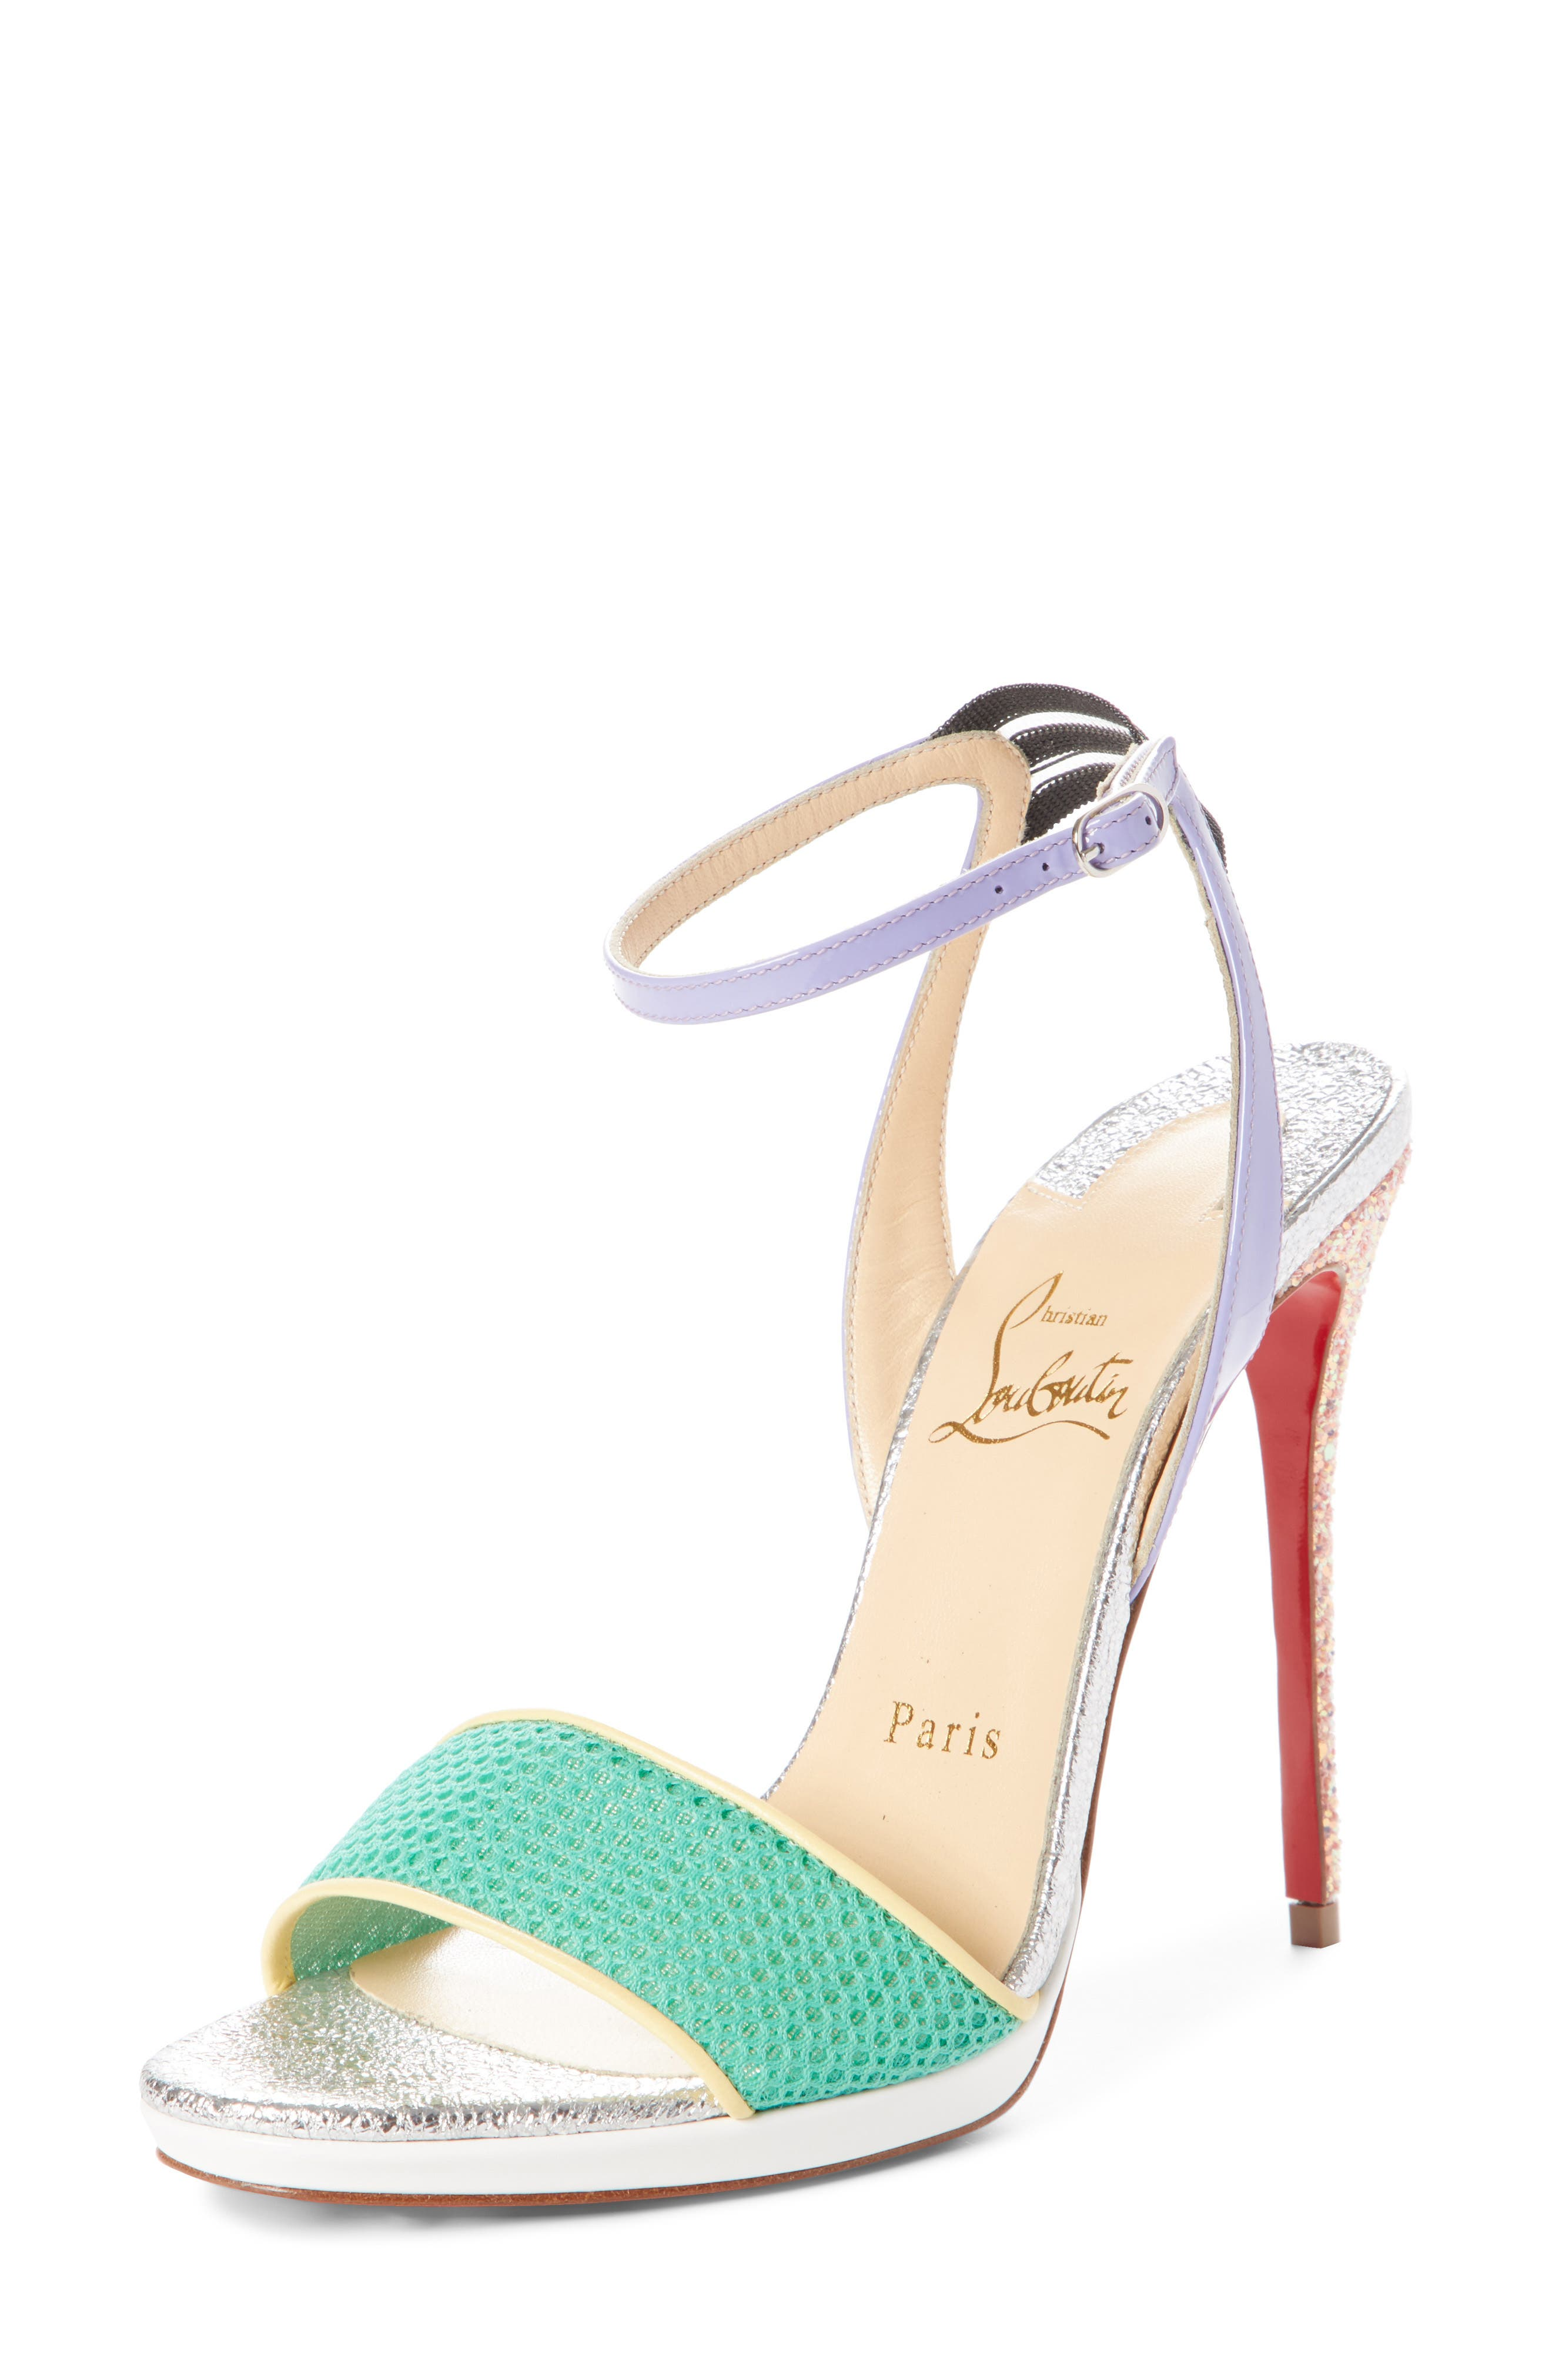 Main Image - Christian Louboutin Discoport Textured Sandal (Women)